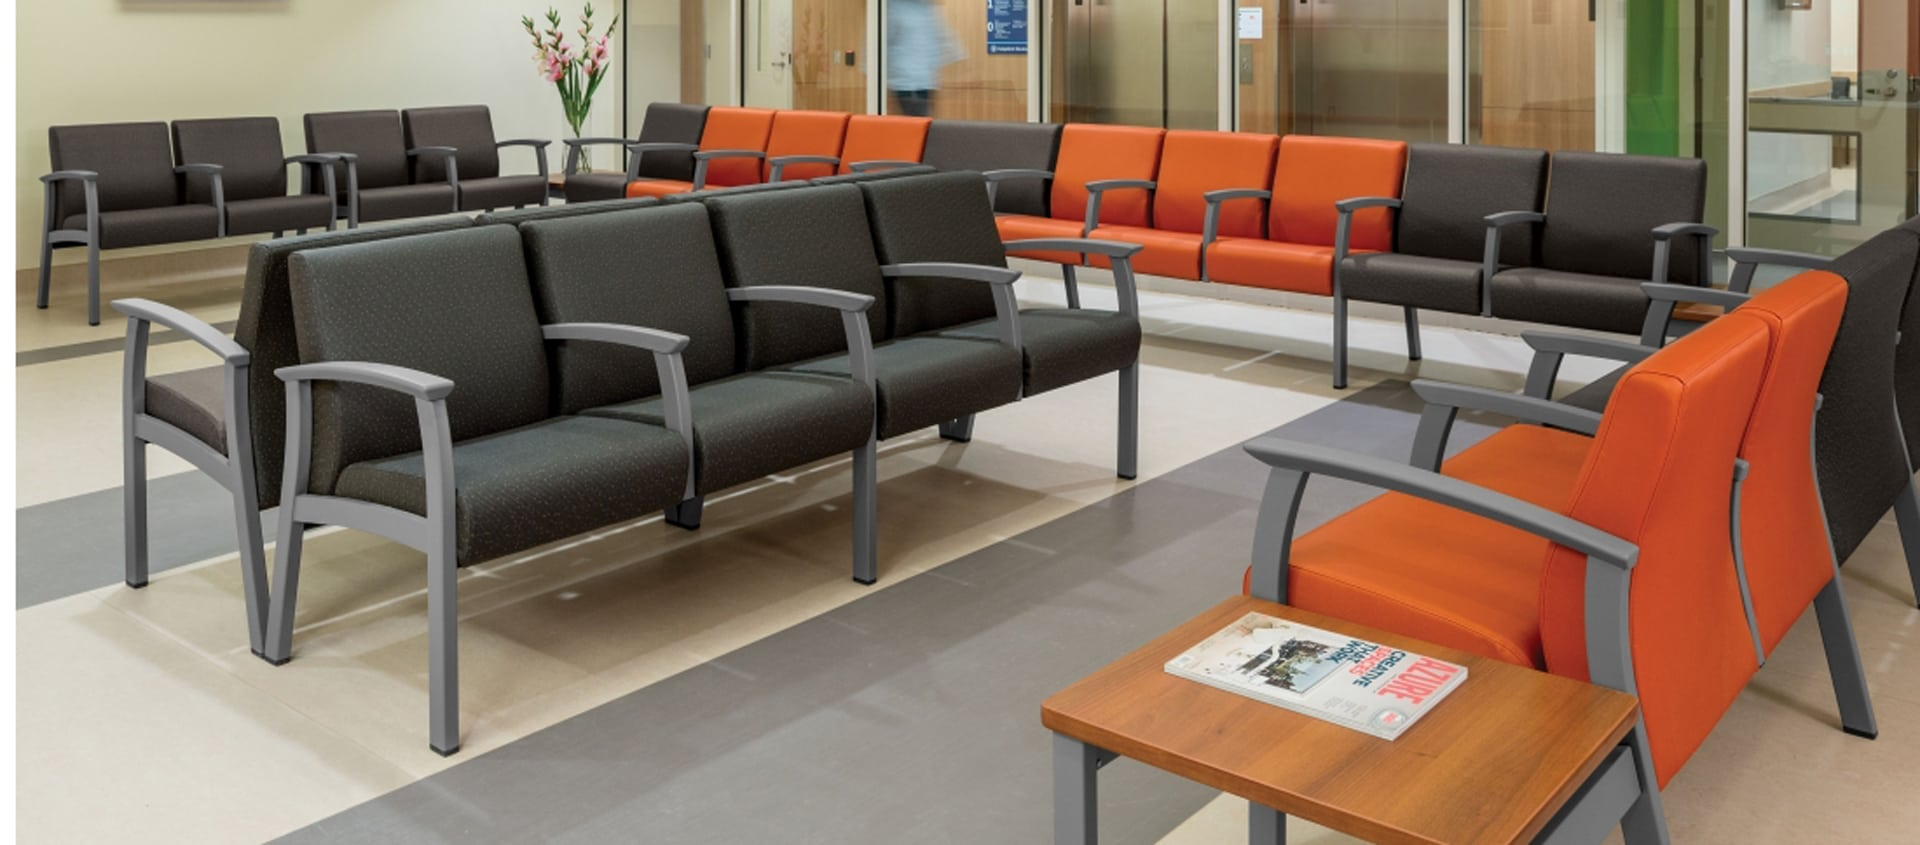 Primacare Modular offers exceptional comfort and replaceable components